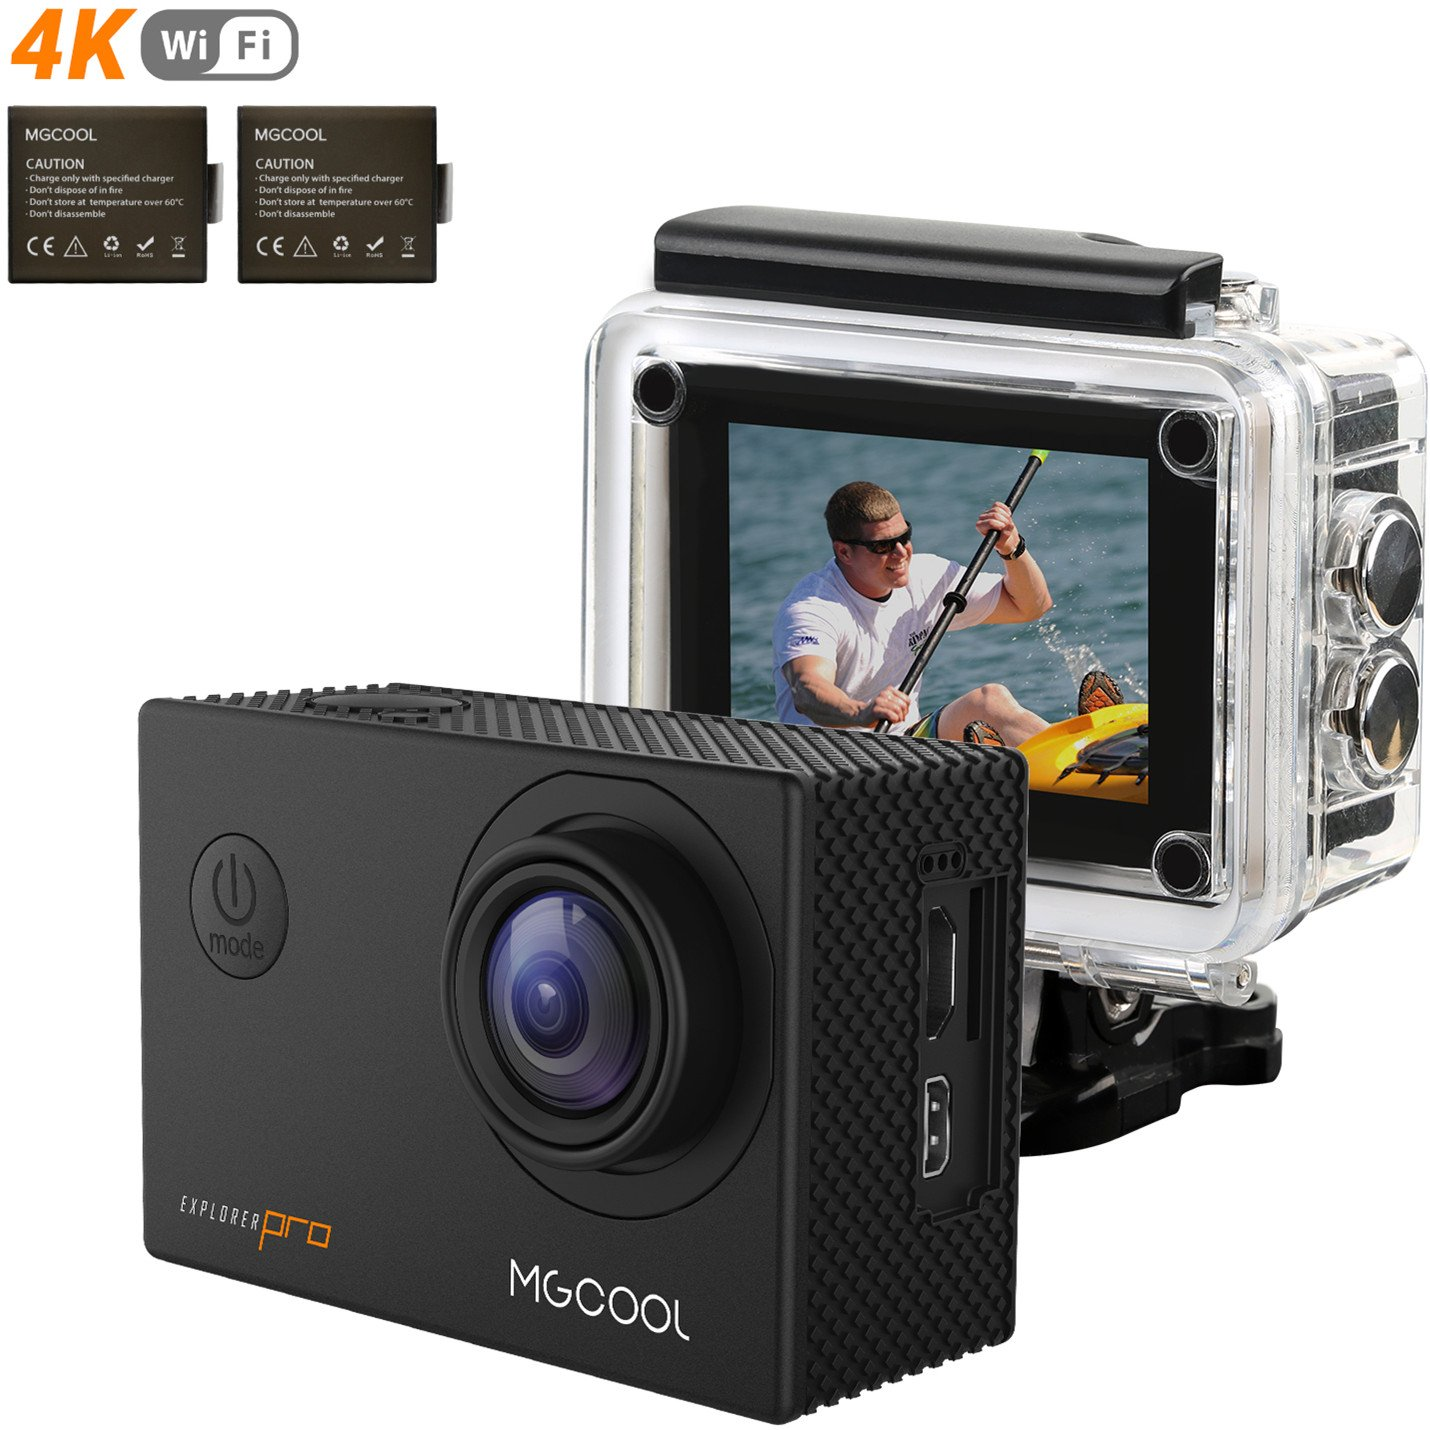 MGCOOL PRO 4K 16MP WIFI Action Camera Sony Sensor 2.0 Inch Ultra HD Underwater Waterproof Sports Action Cam with 2 Batteries and Helmet Accessories Kit, Christmas Gift by MGcool